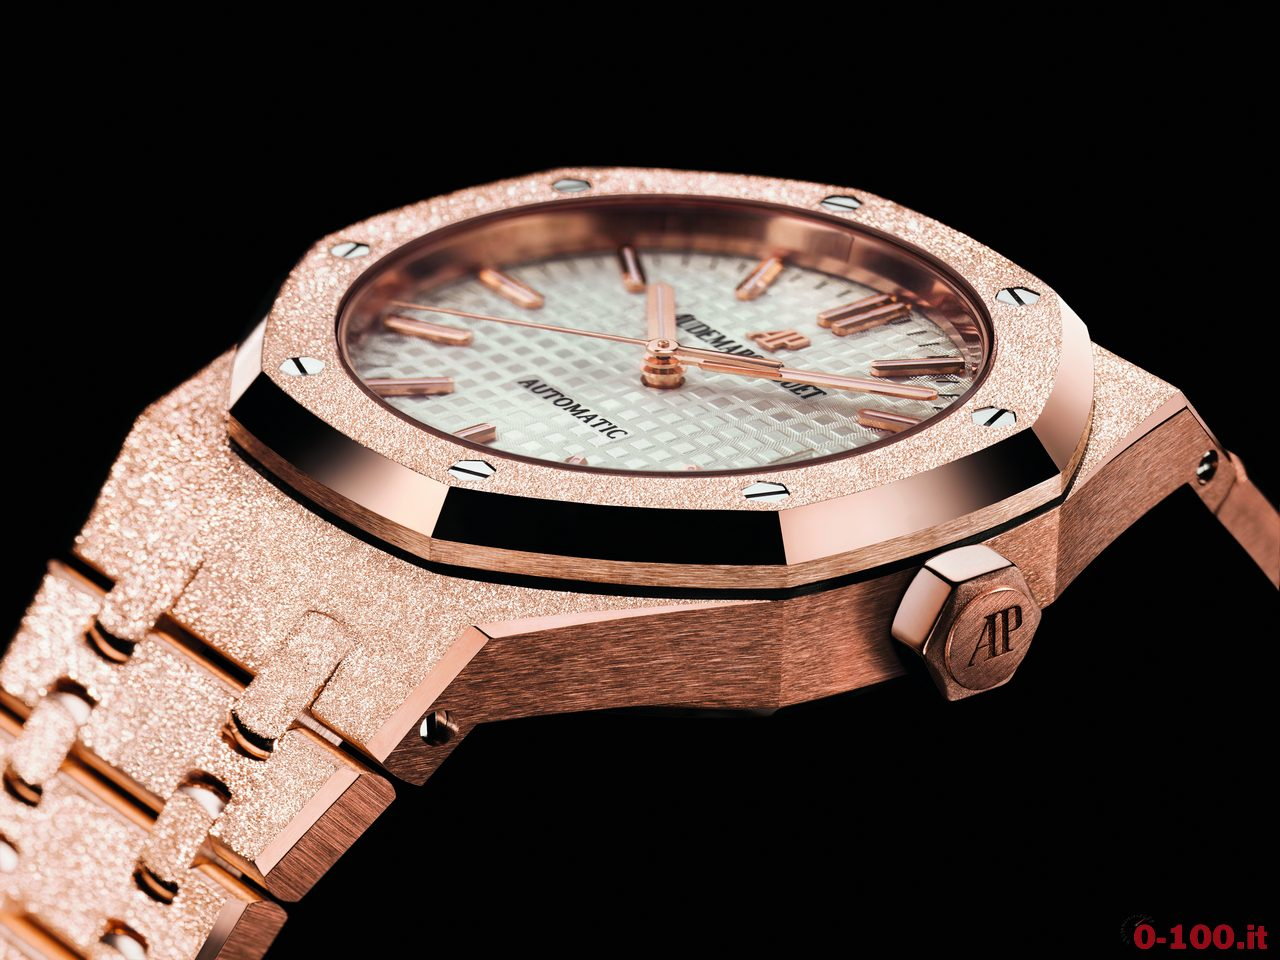 audemars-piguet-royal-oak-frosted-gold-ref-15454or-gg-1259or-01-prezzo-price-carolina-bucci_0-1006